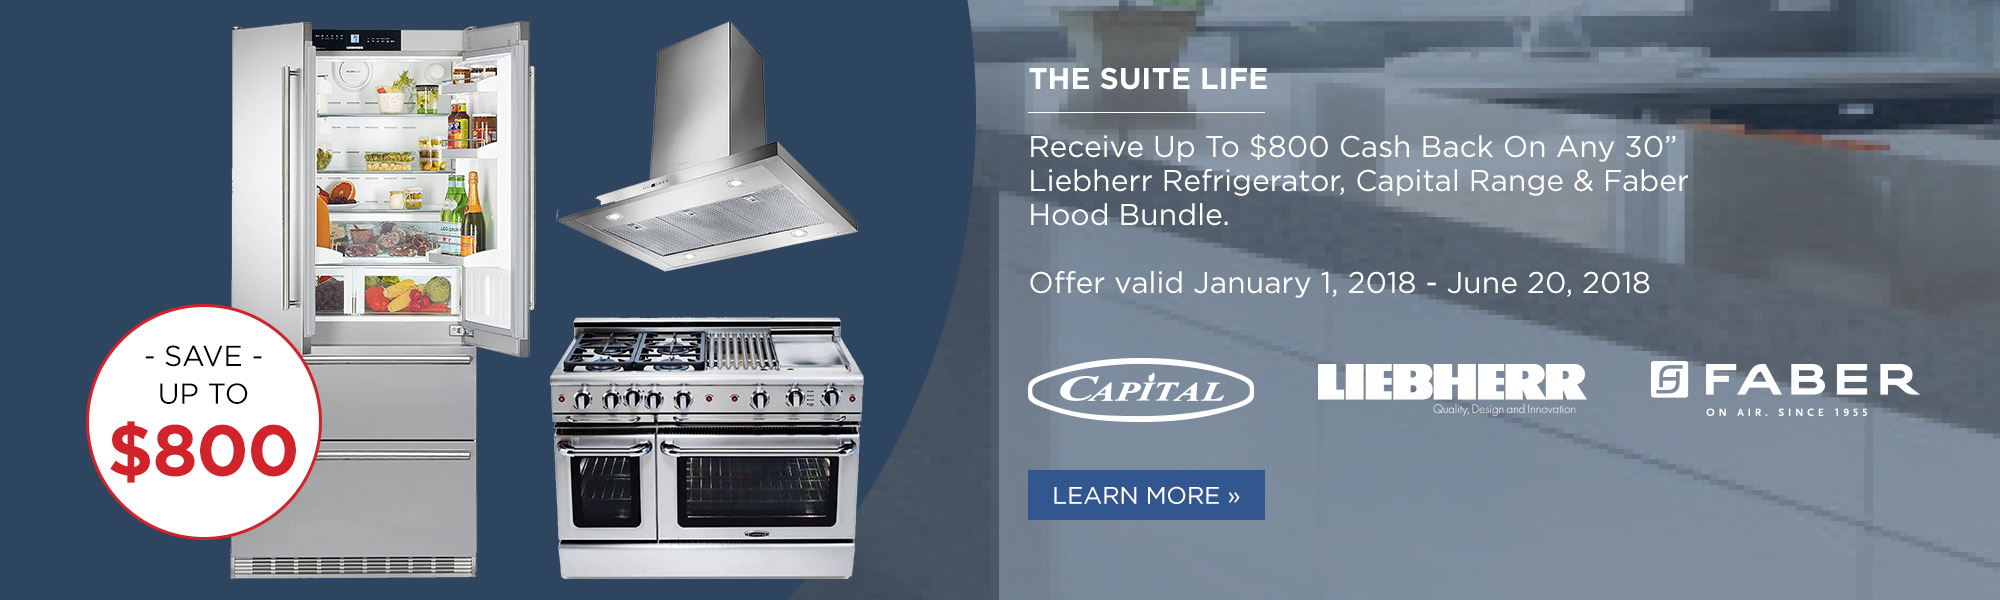 Suite Life - Save up to $800